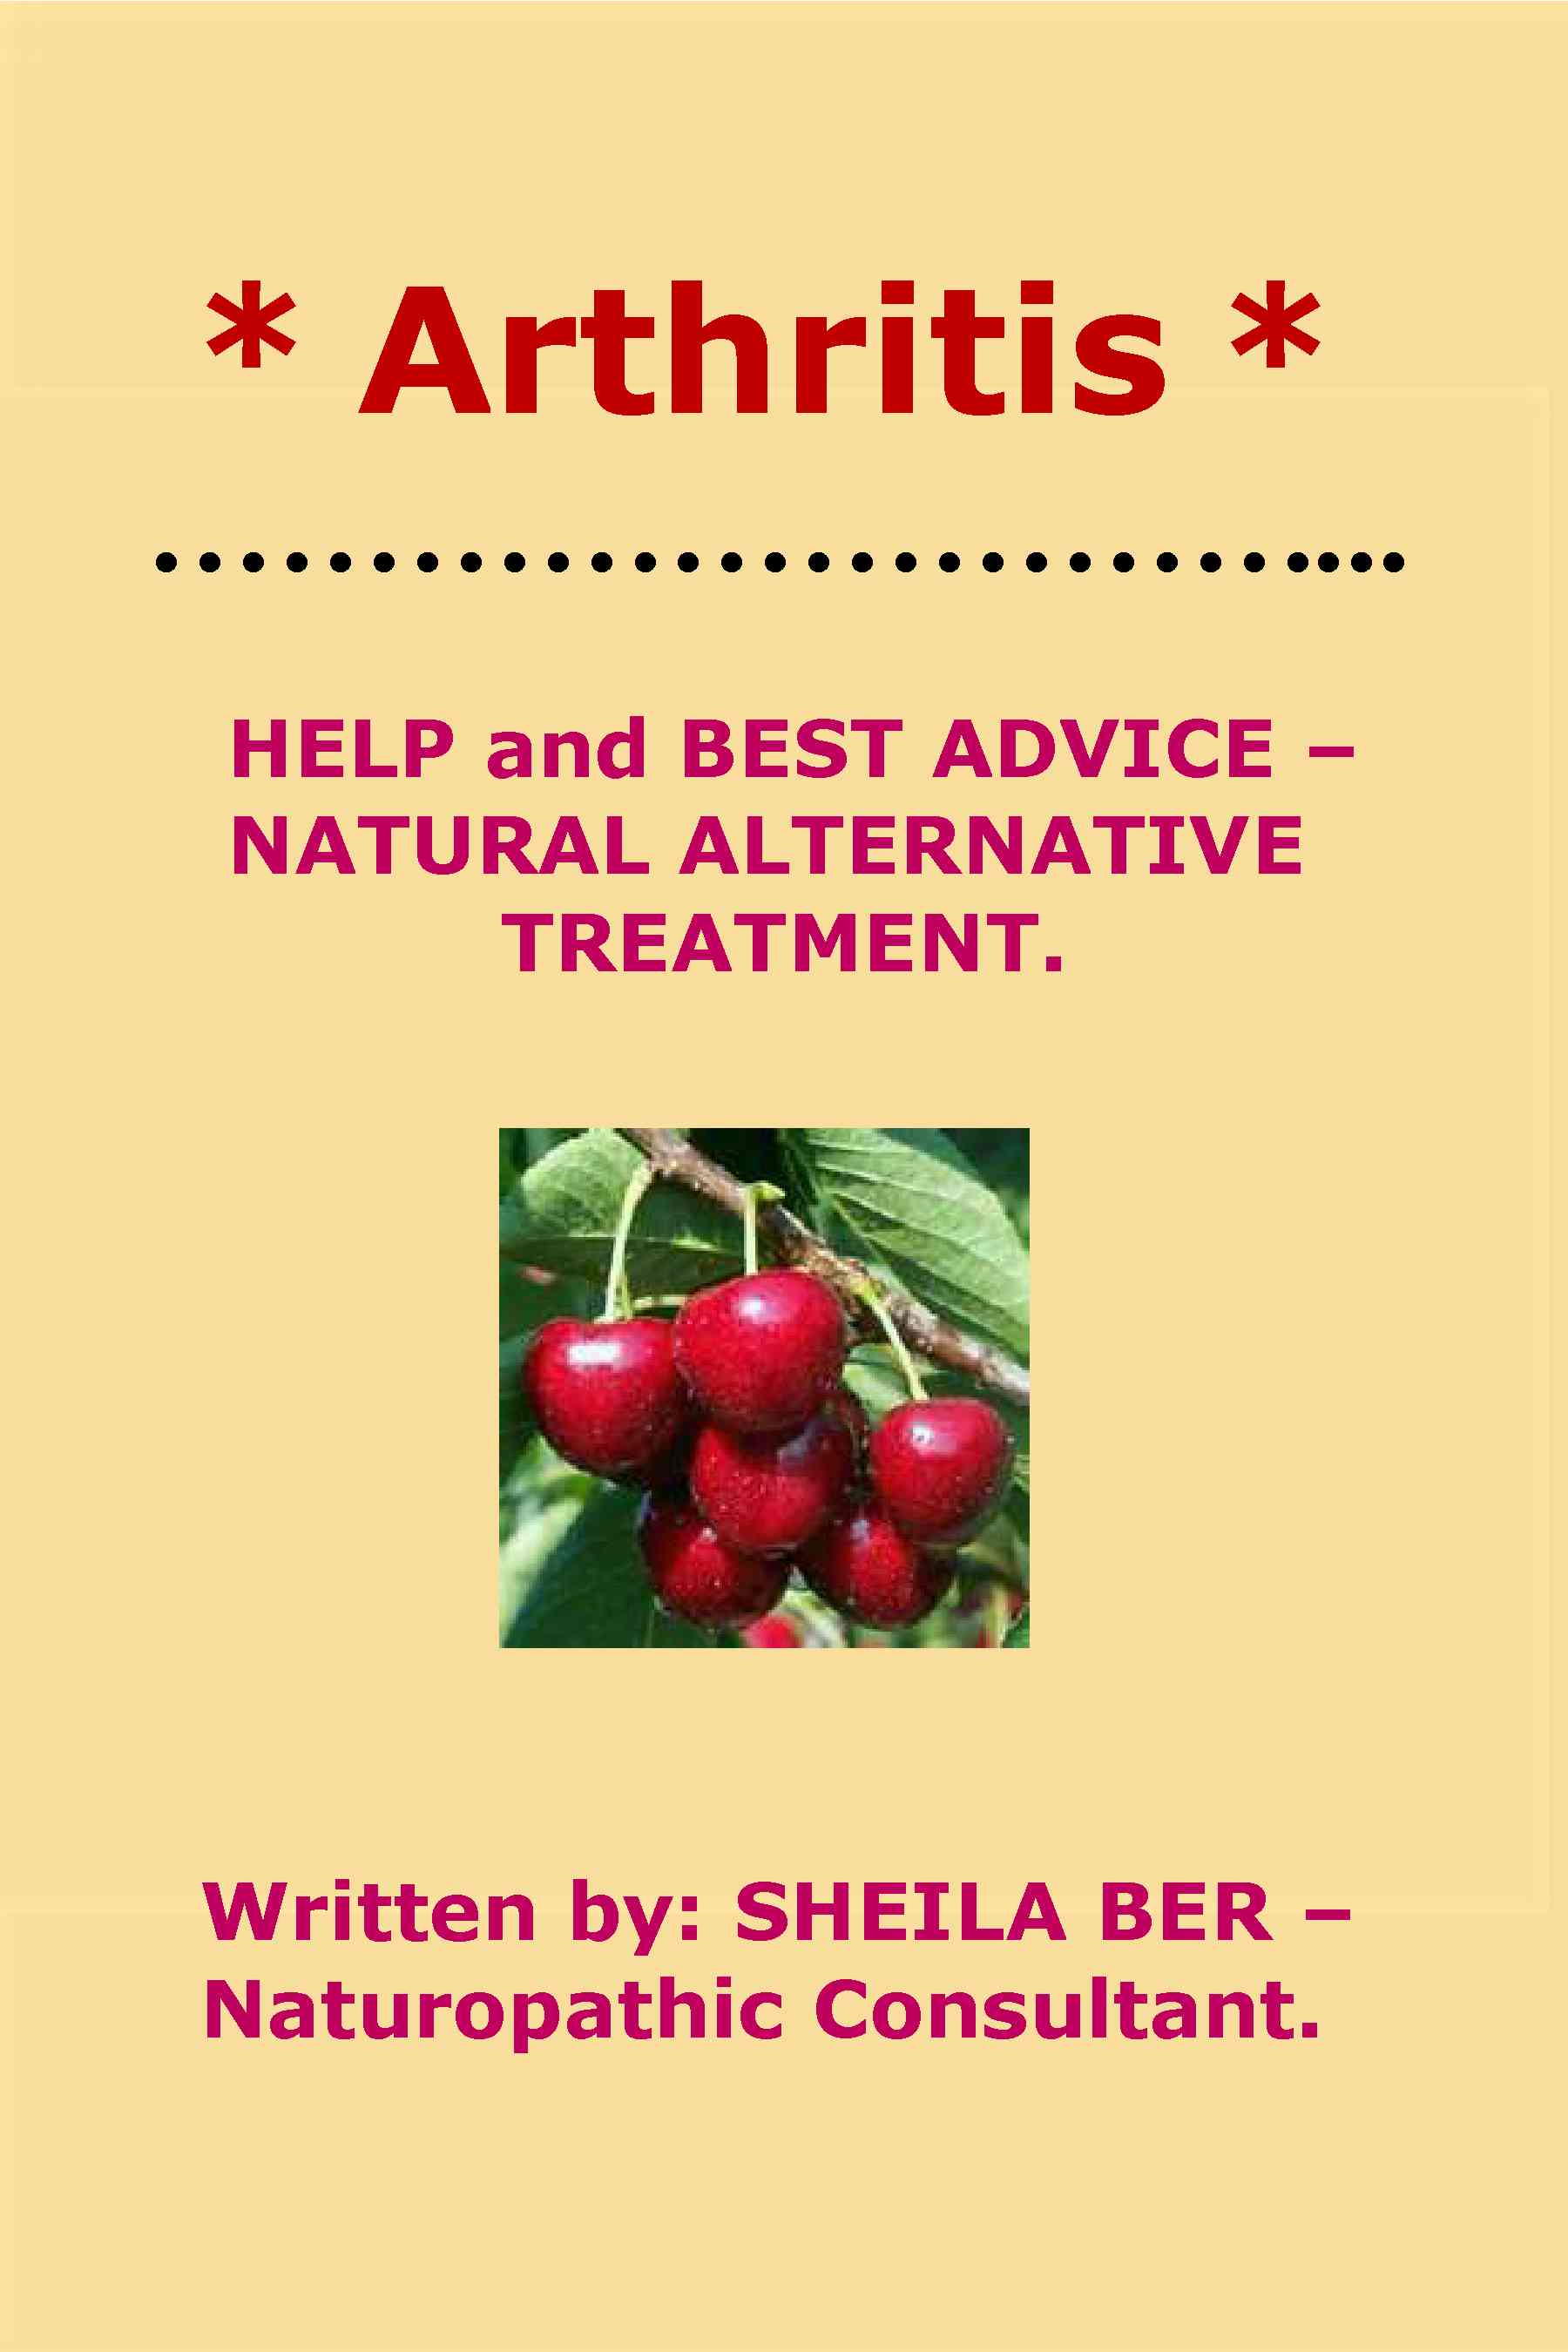 * ARTHRITIS * HELP and BEST ADVICE: NATURAL ALTERNATIVE TREATMENT.  Written by SHEILA BER.